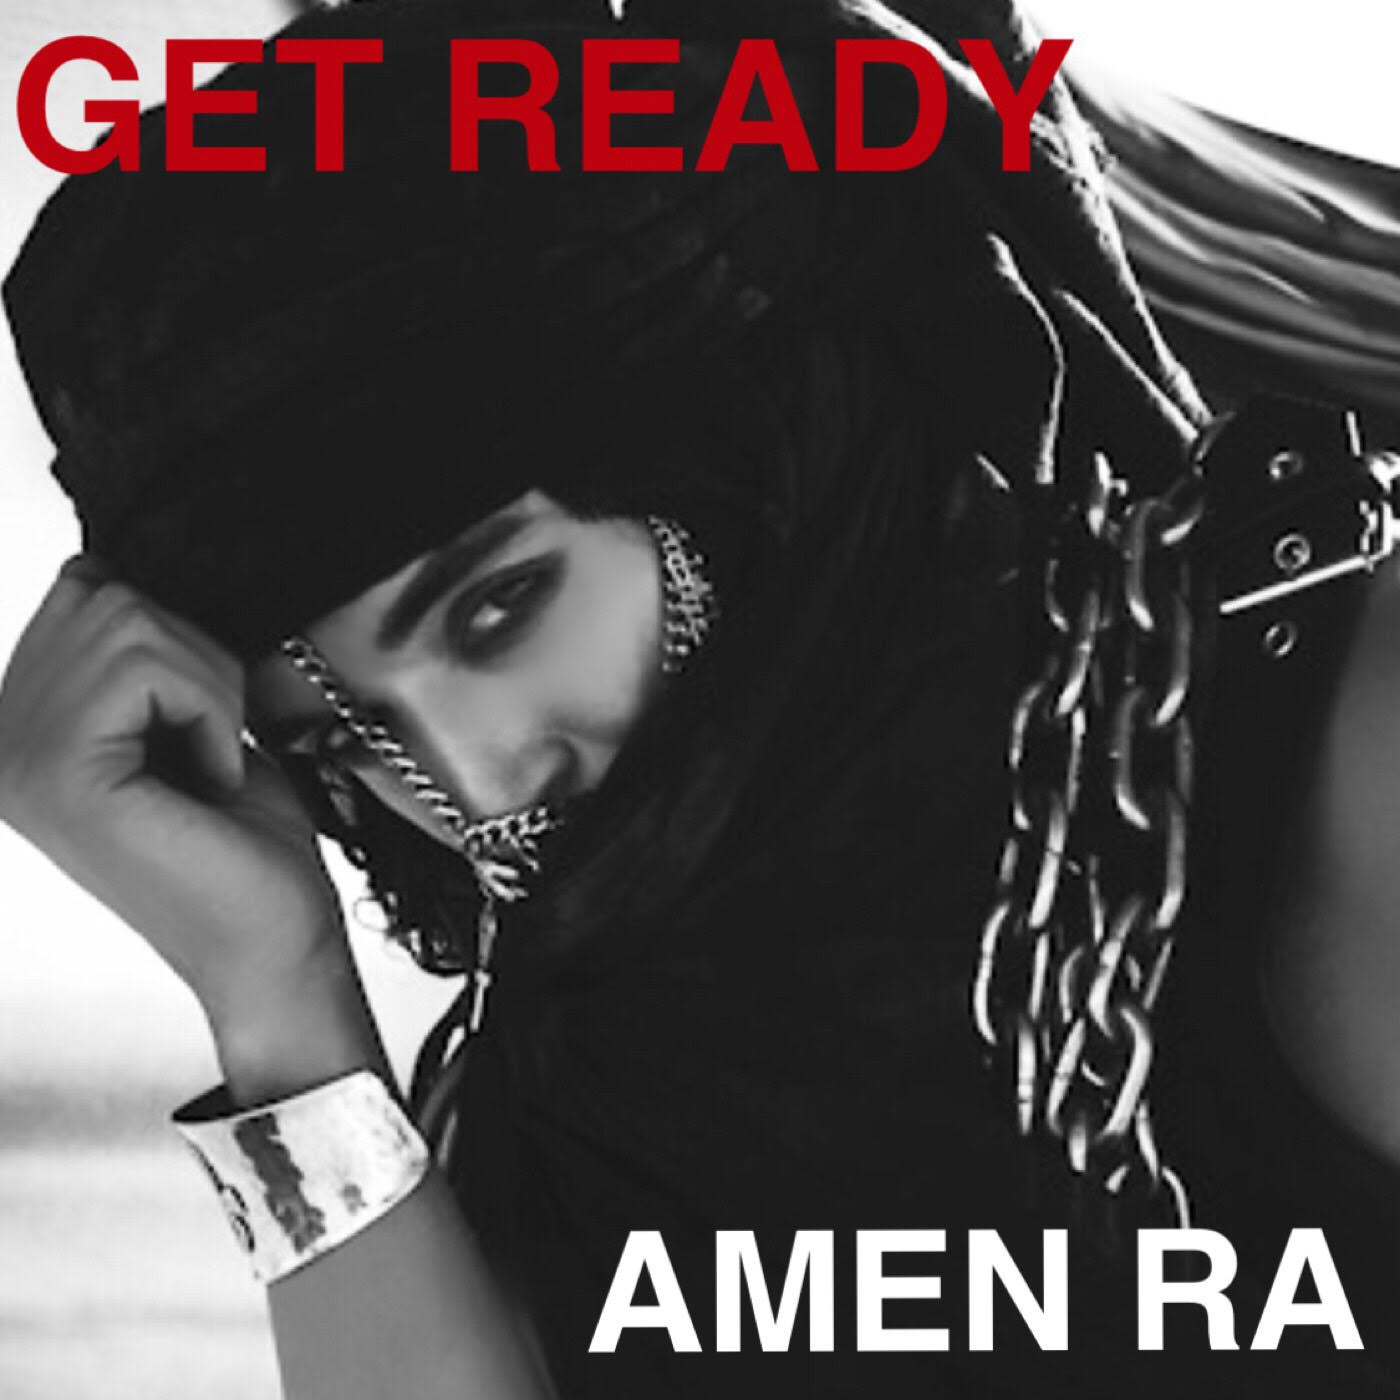 AMEN Ra - GET READY - Cover.jpg